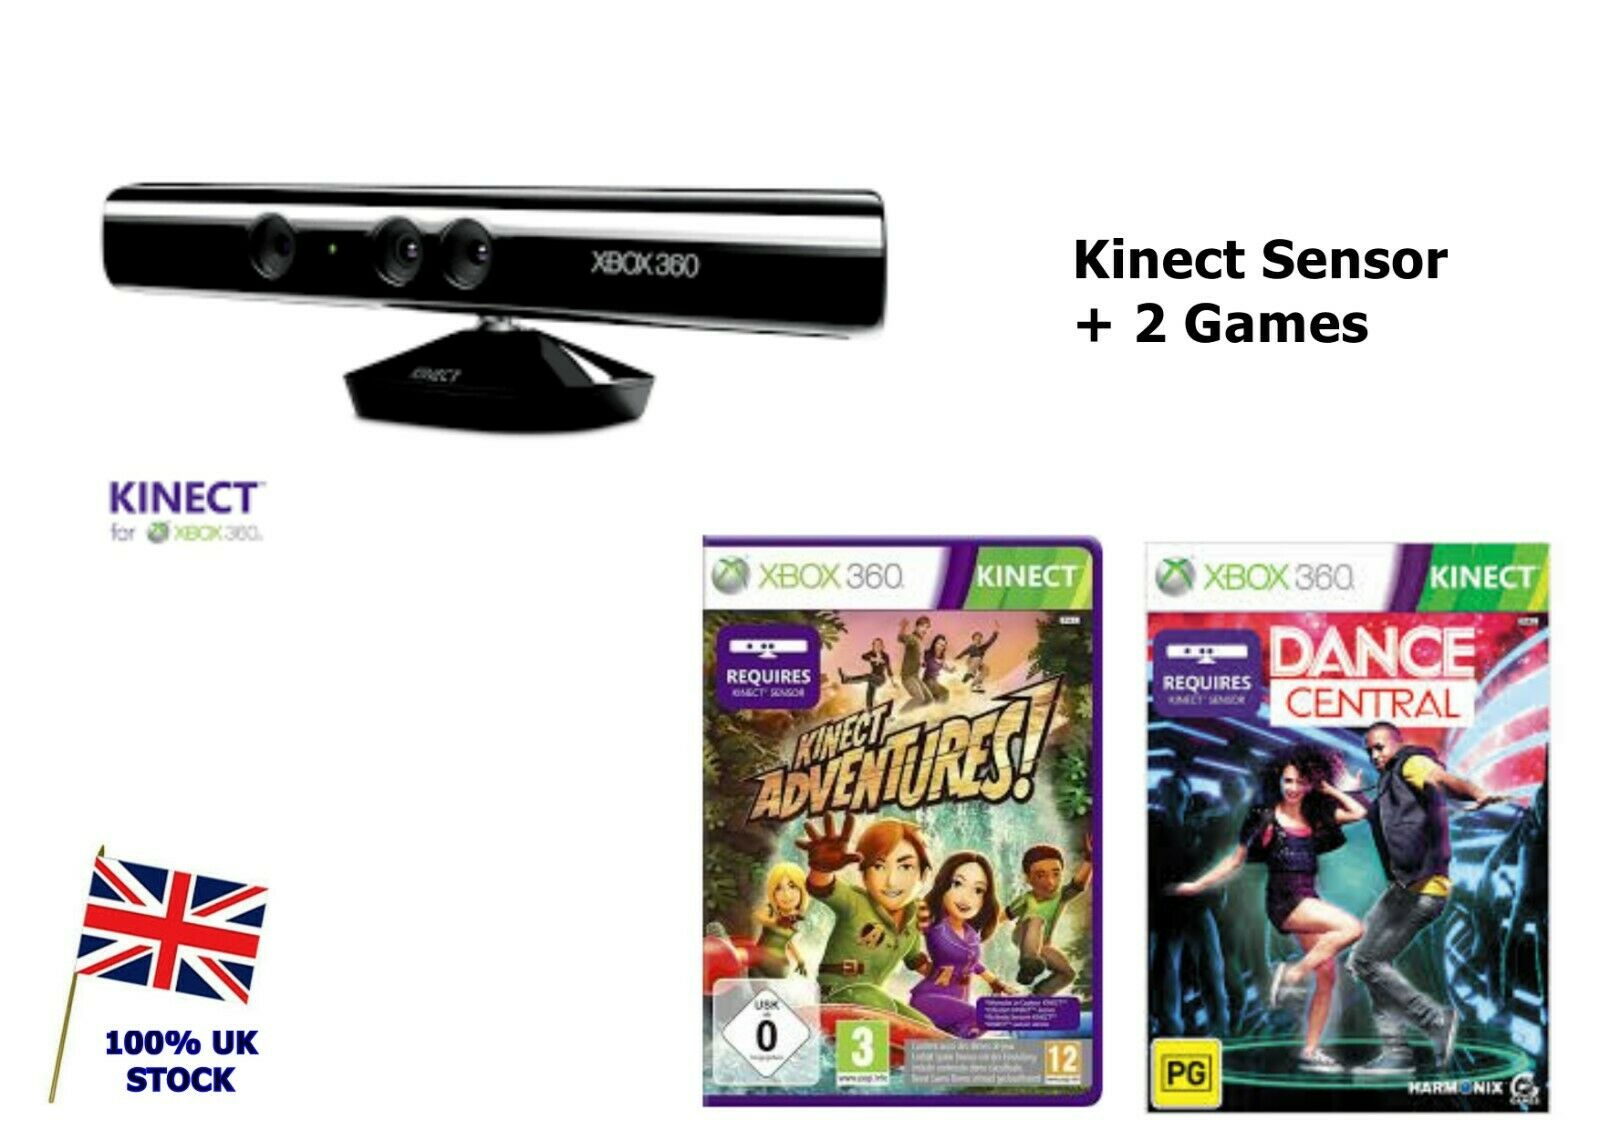 Xbox 360 Kinect Sensor BUNDLE with 2 GAMES - Kinect Adventures + Dance Central